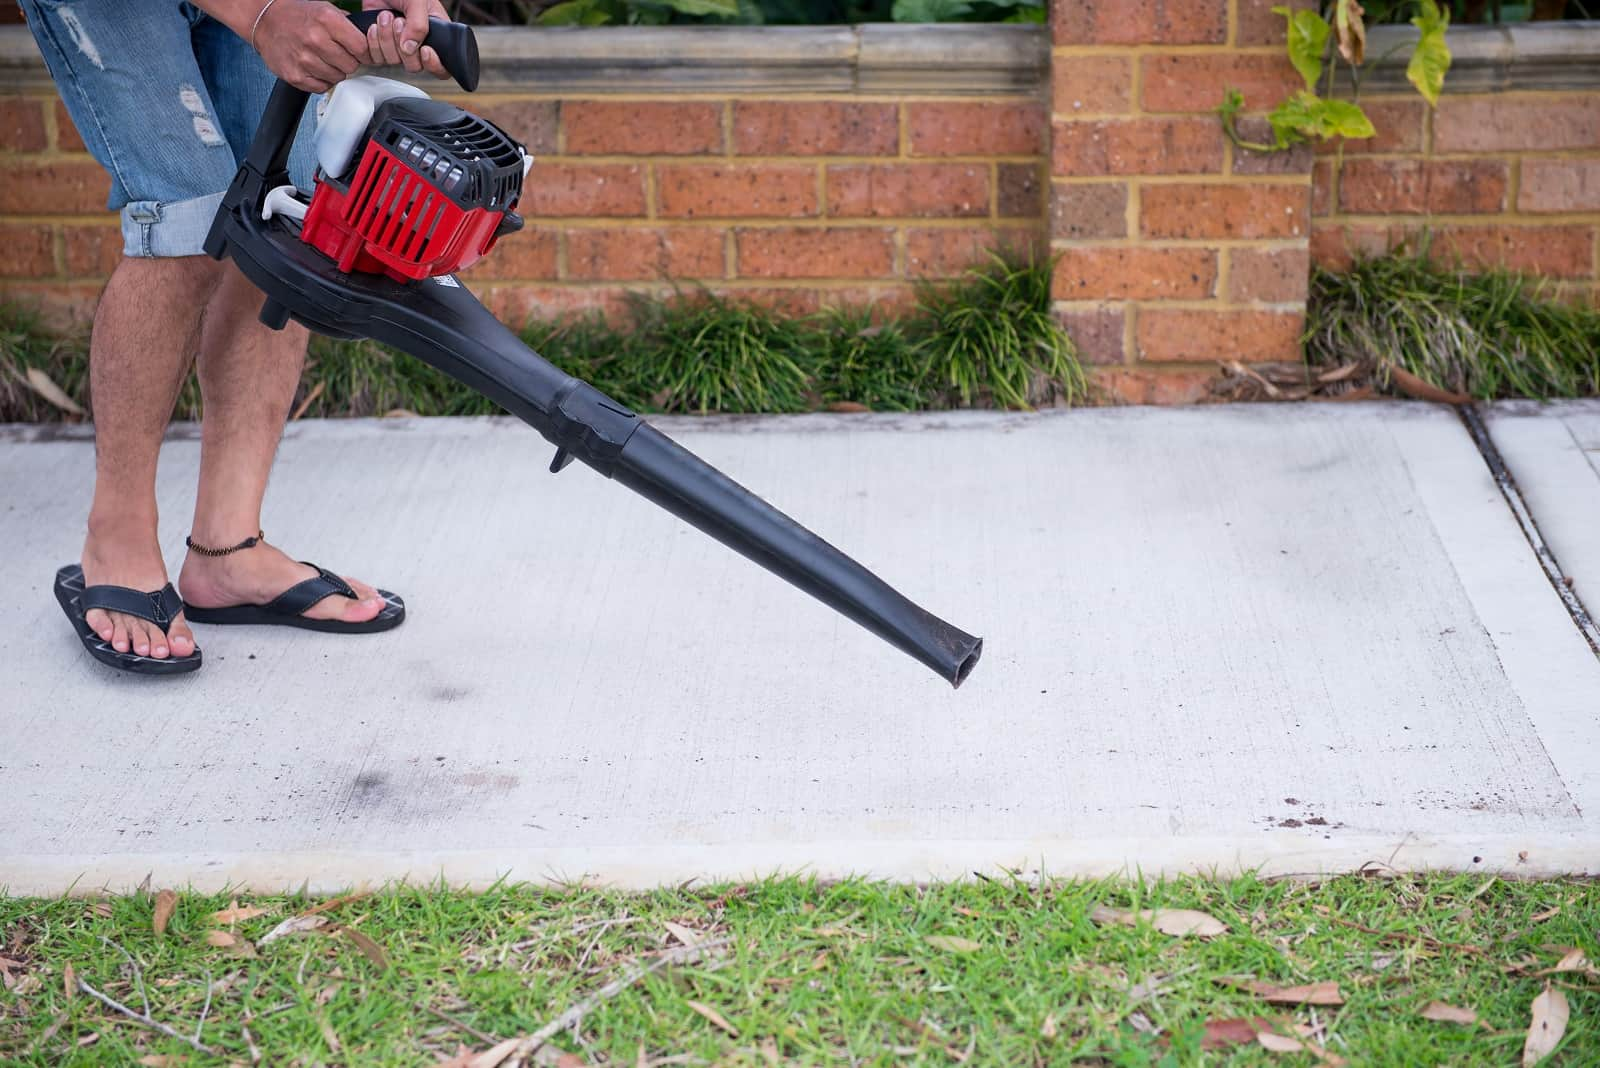 https://devices4home.com/wp-content/uploads/2019/04/Gas-Leaf-Blower-min-1.jpg